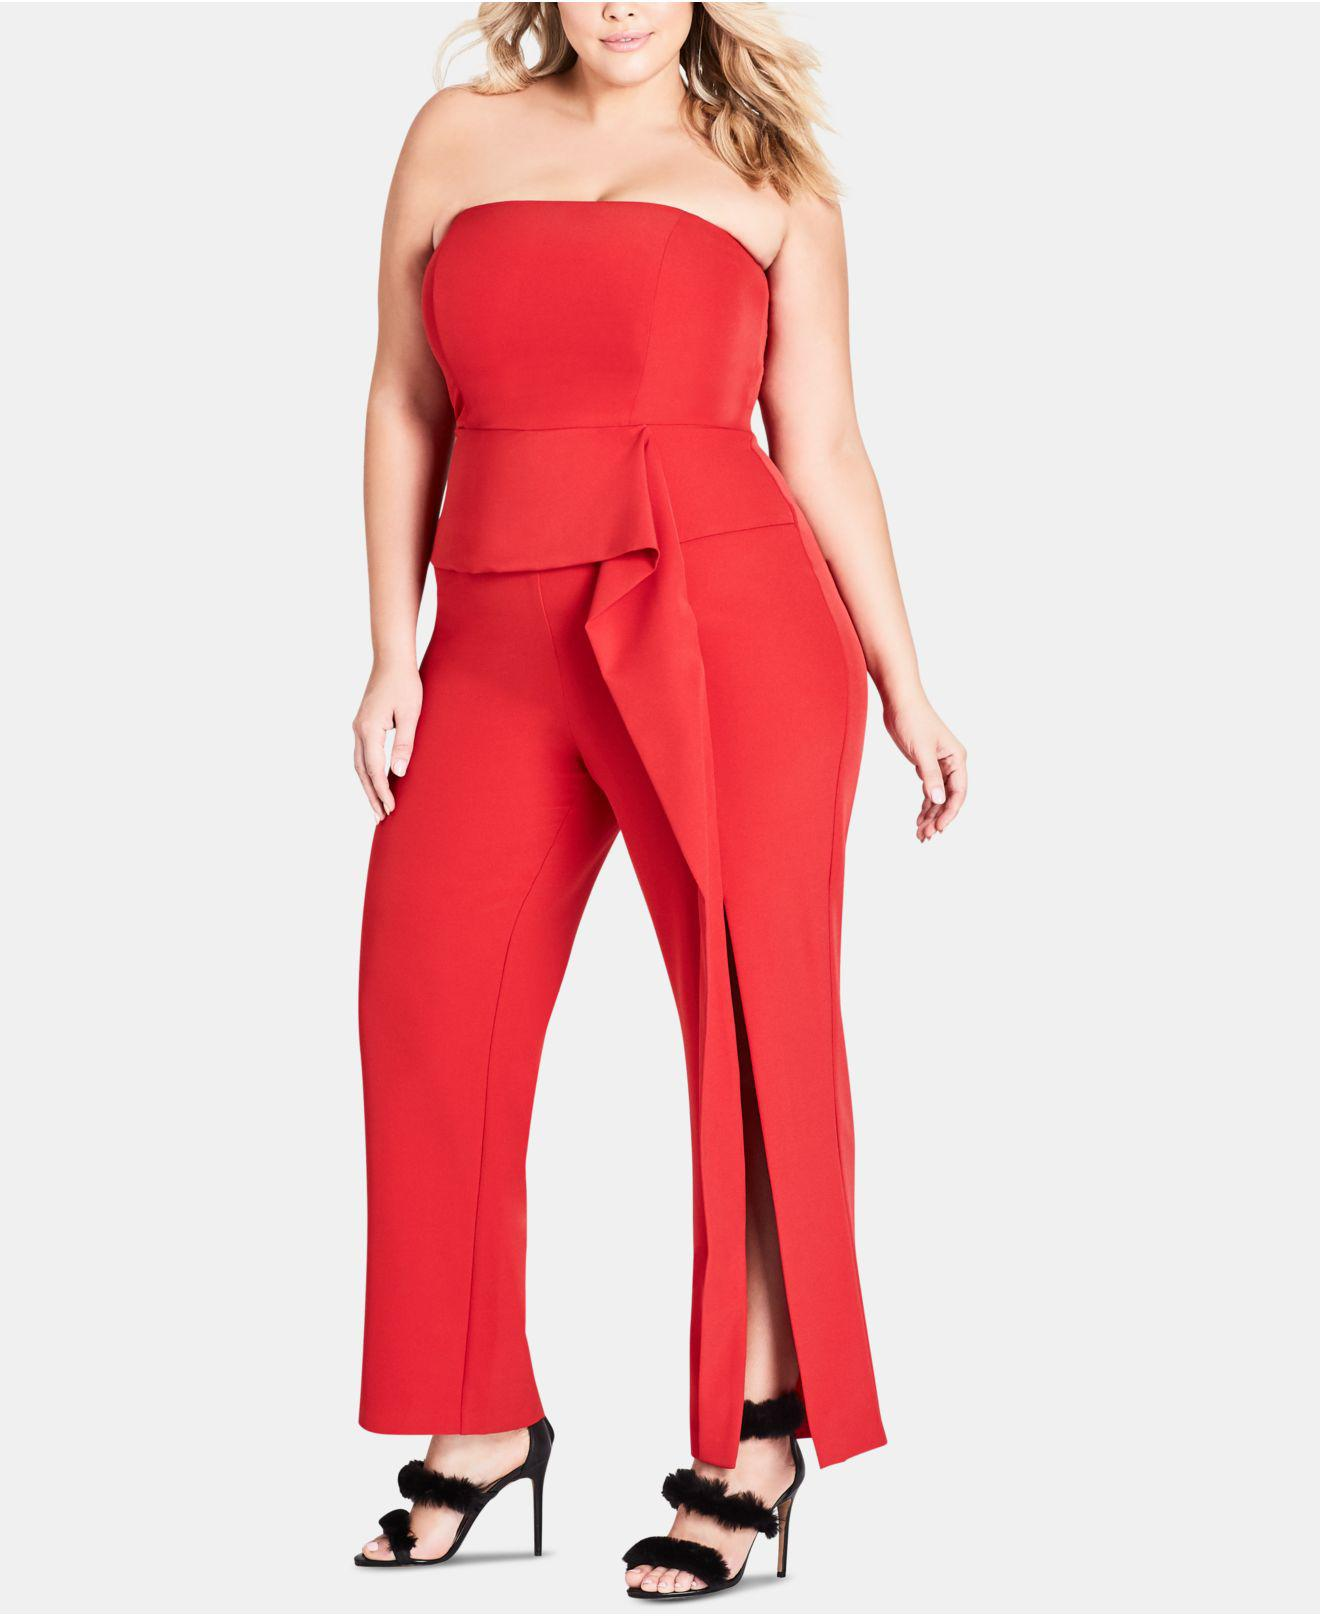 a2c35039a4 Lyst - City Chic Trendy Plus Size Twister Jumpsuit in Red